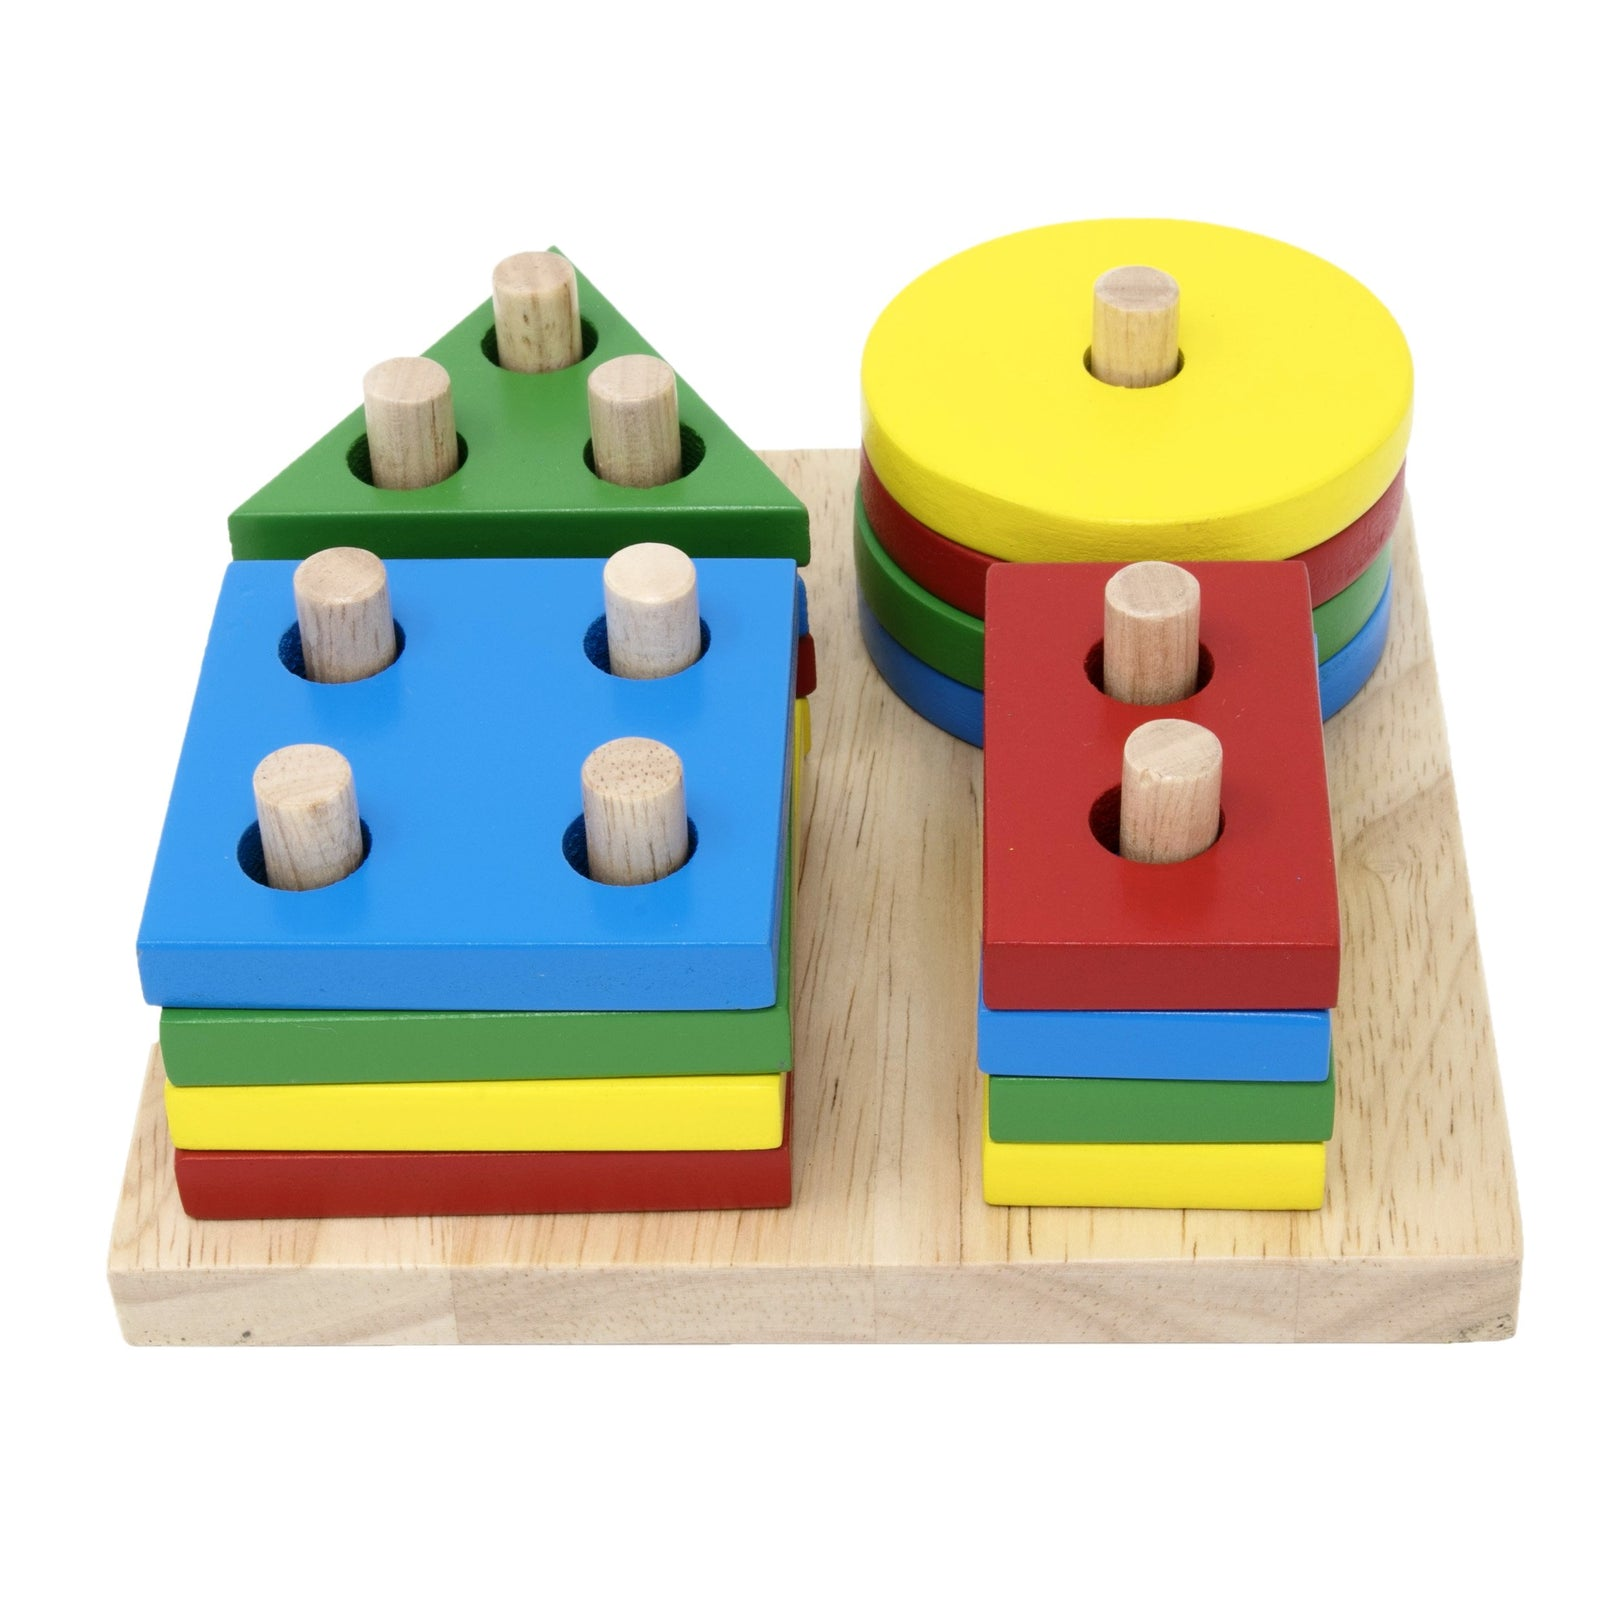 Geometric shape Sort Early Learning Wooden Toy Educational Toy